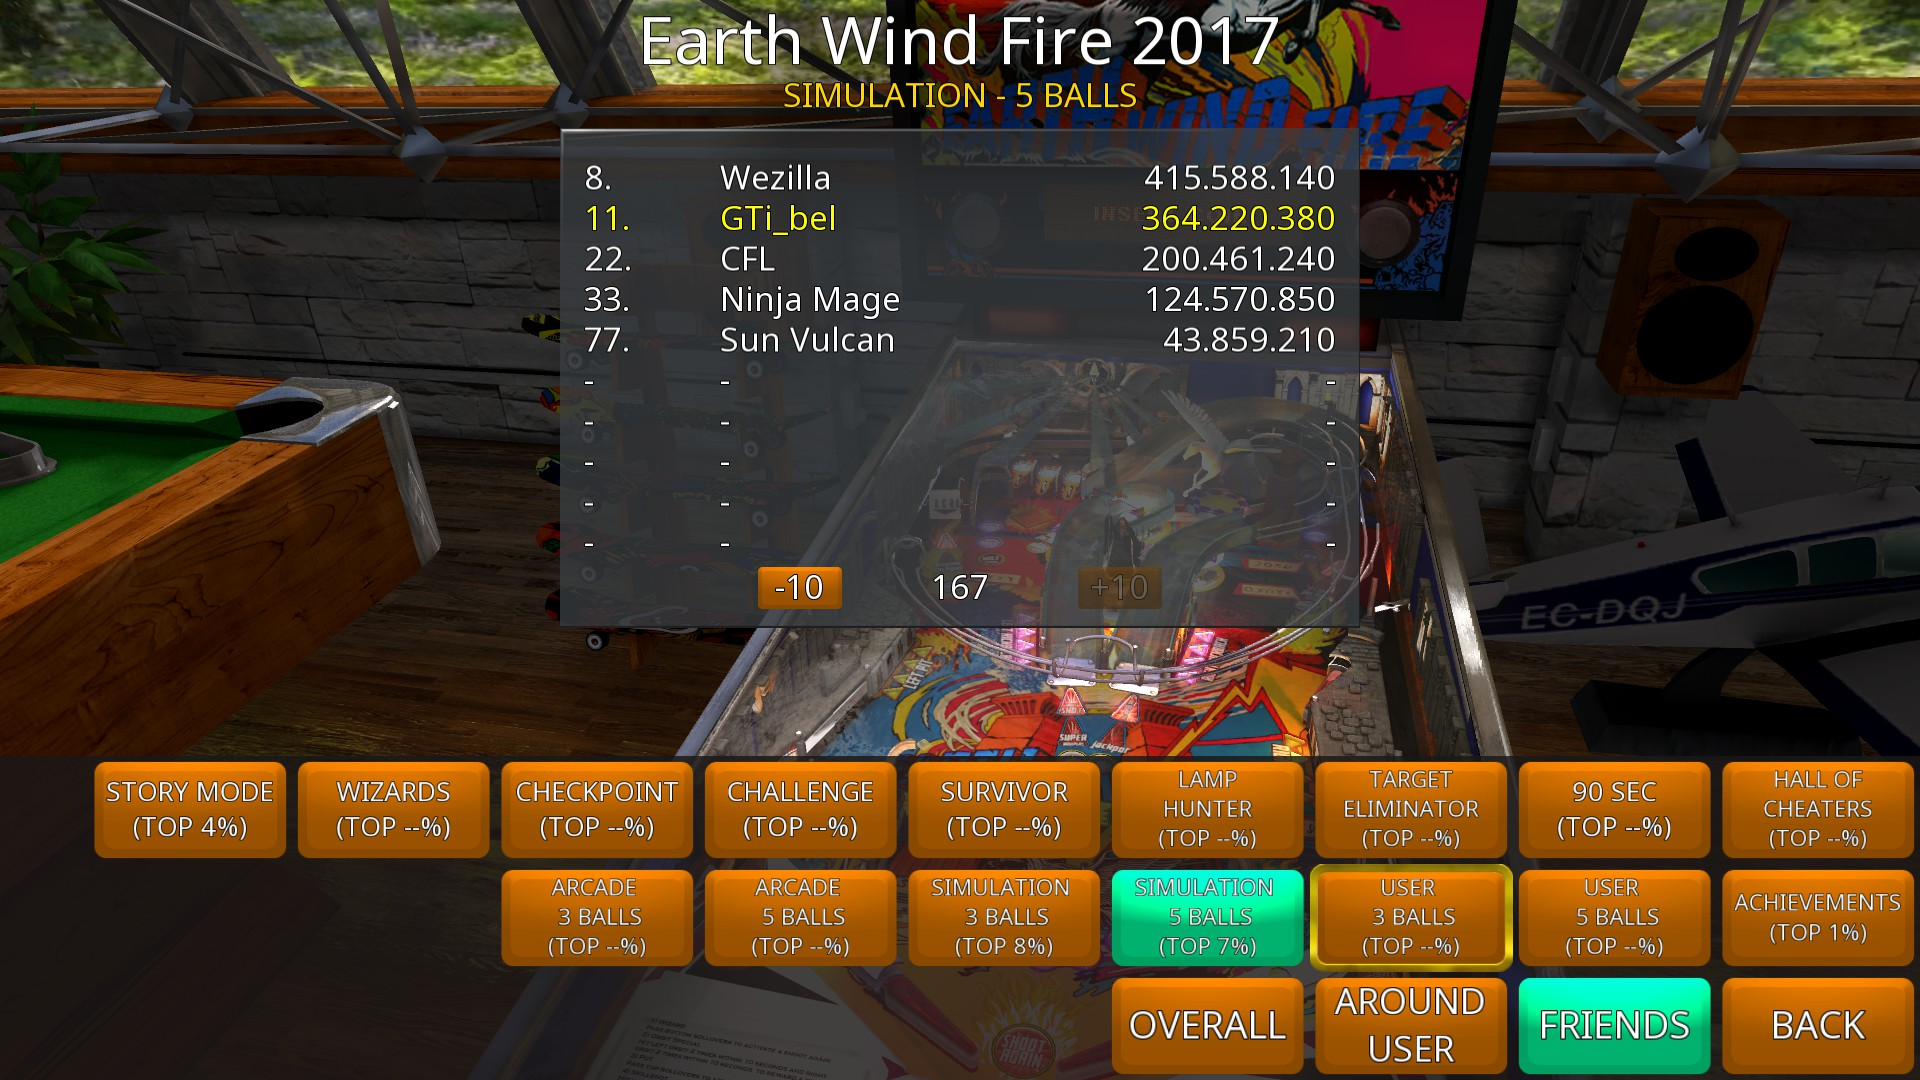 Zaccaria Pinball: Earth Wind Fire 2017 [5 balls] 364,220,380 points